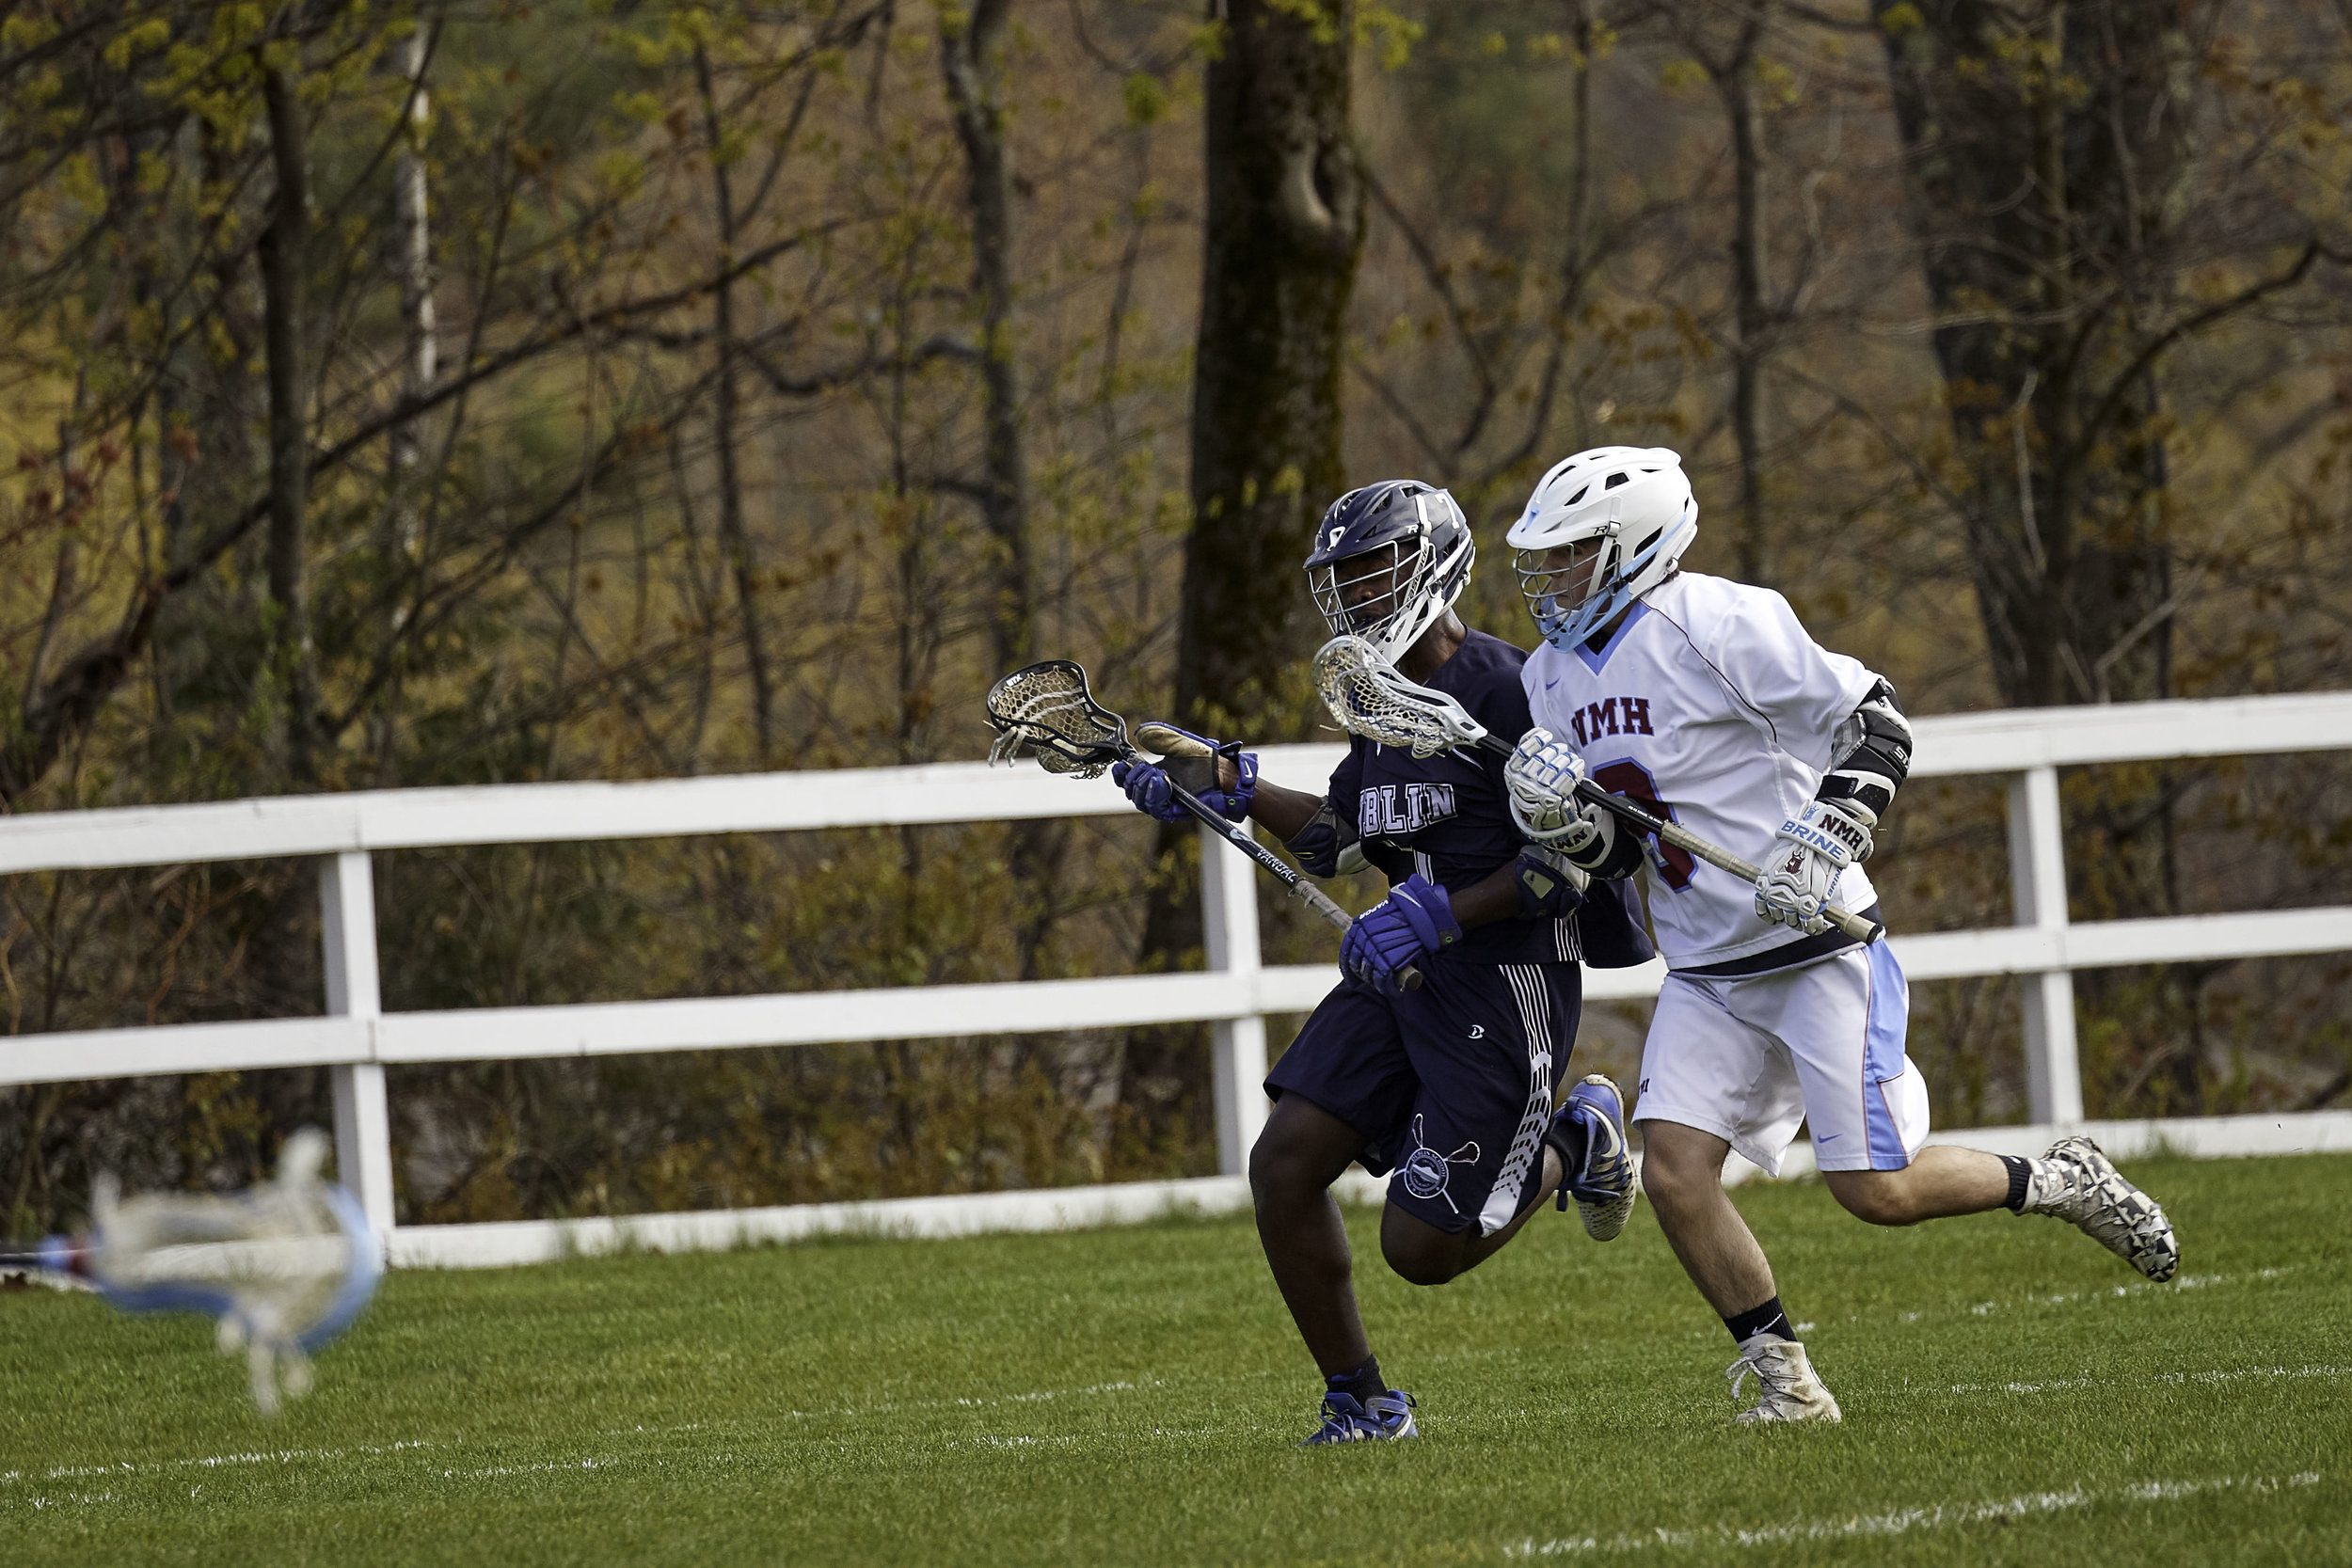 Boys Lax vs Northfield Mount Hermon JV - May 15 2019 - 0014.jpg